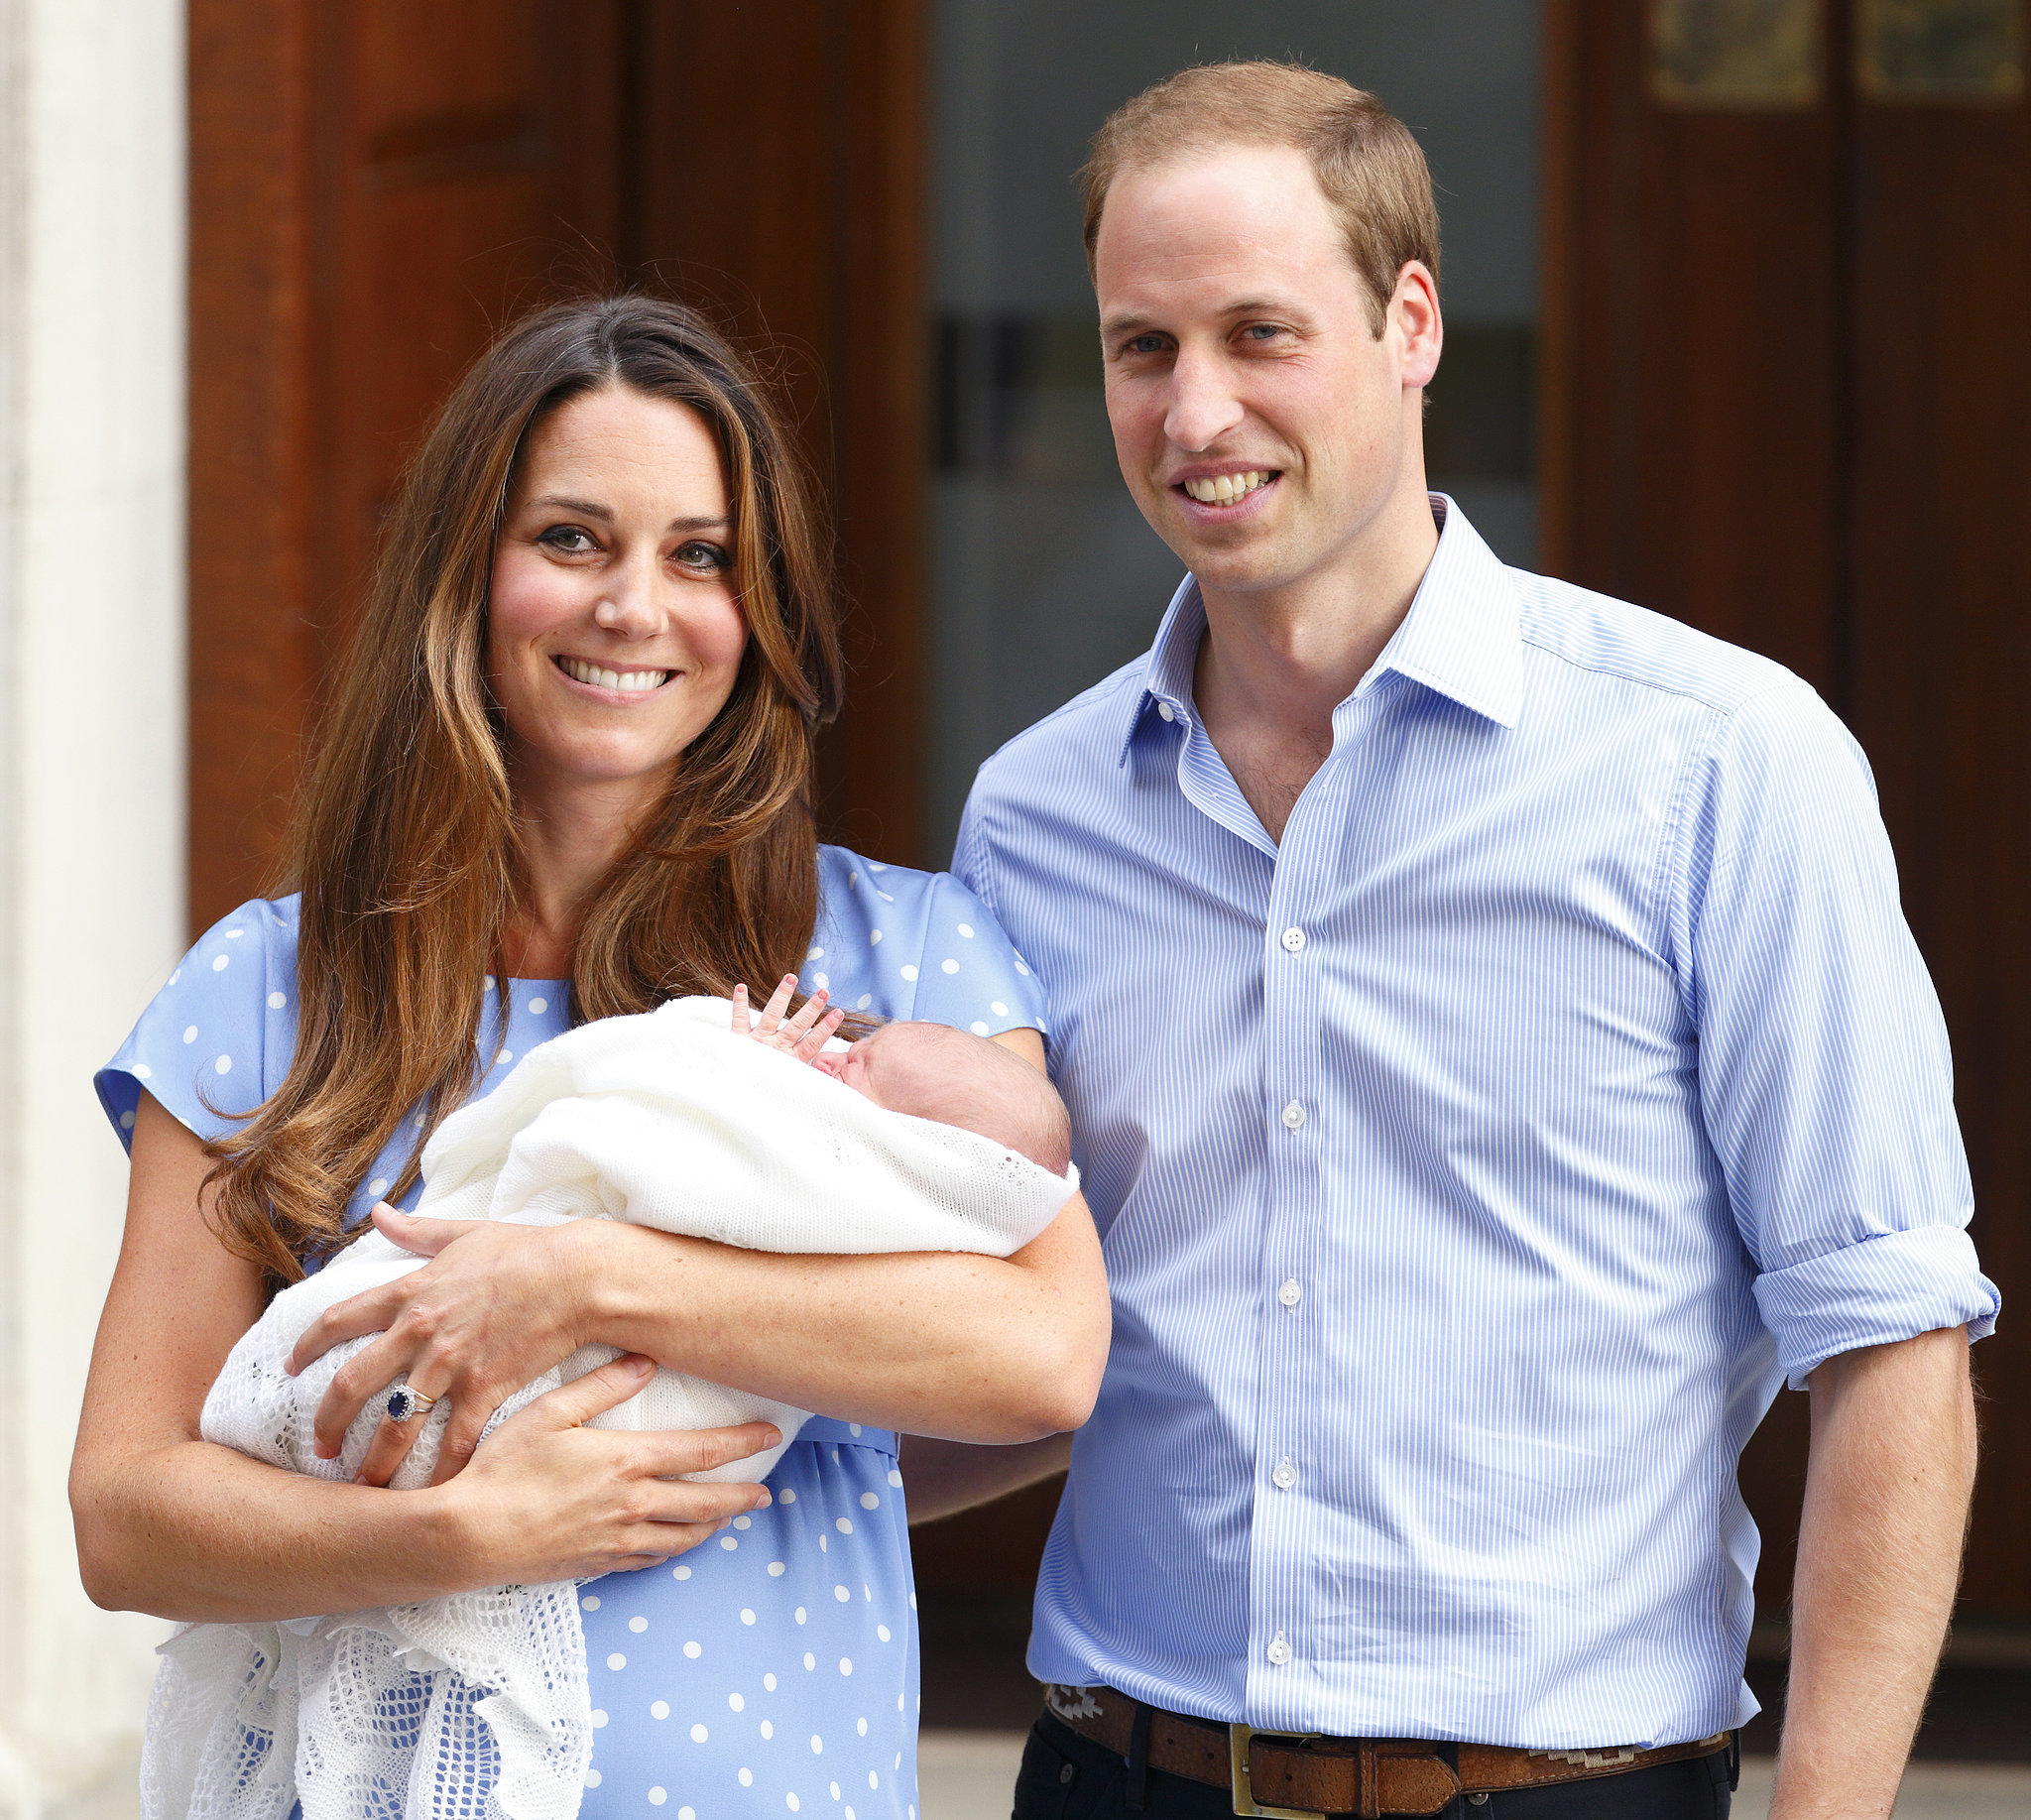 Prince George Nailing the Royal Wave at Just 1 Day Old